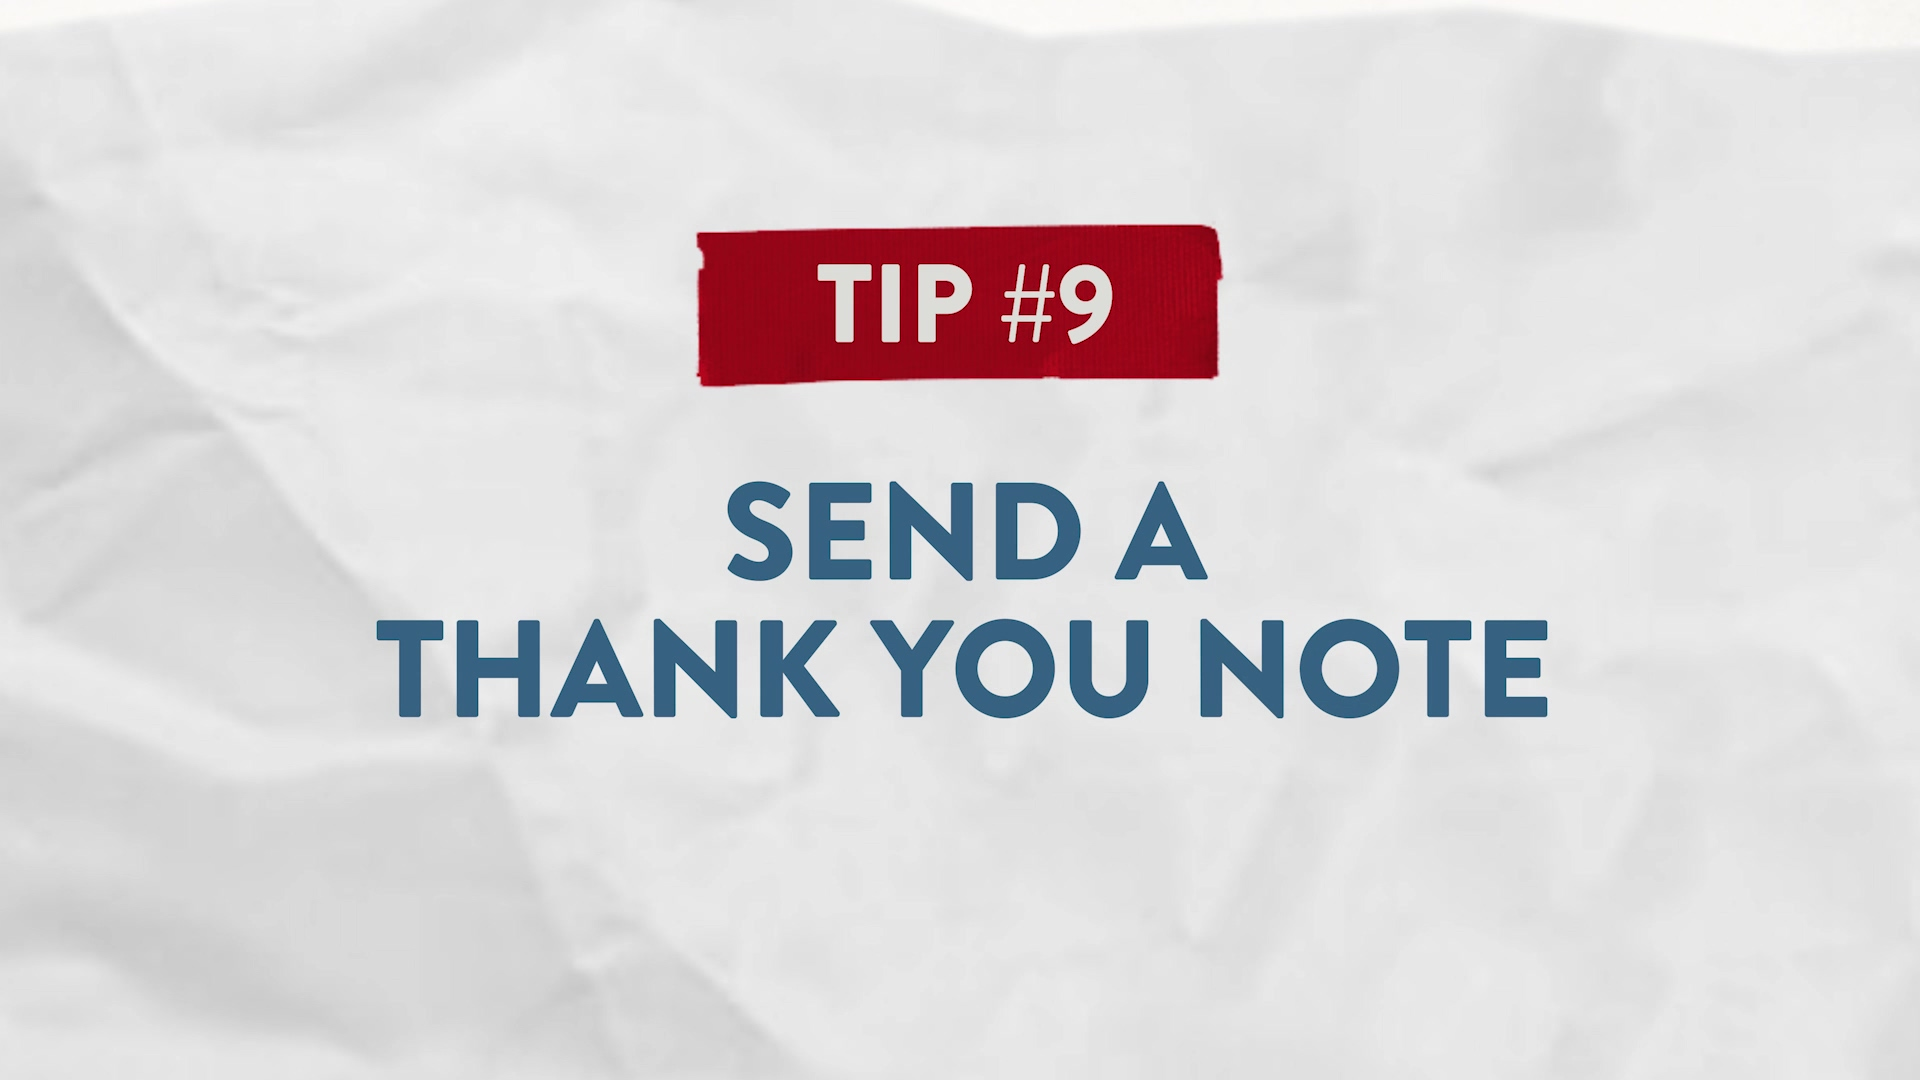 Tip #9 Send a Thank You Note